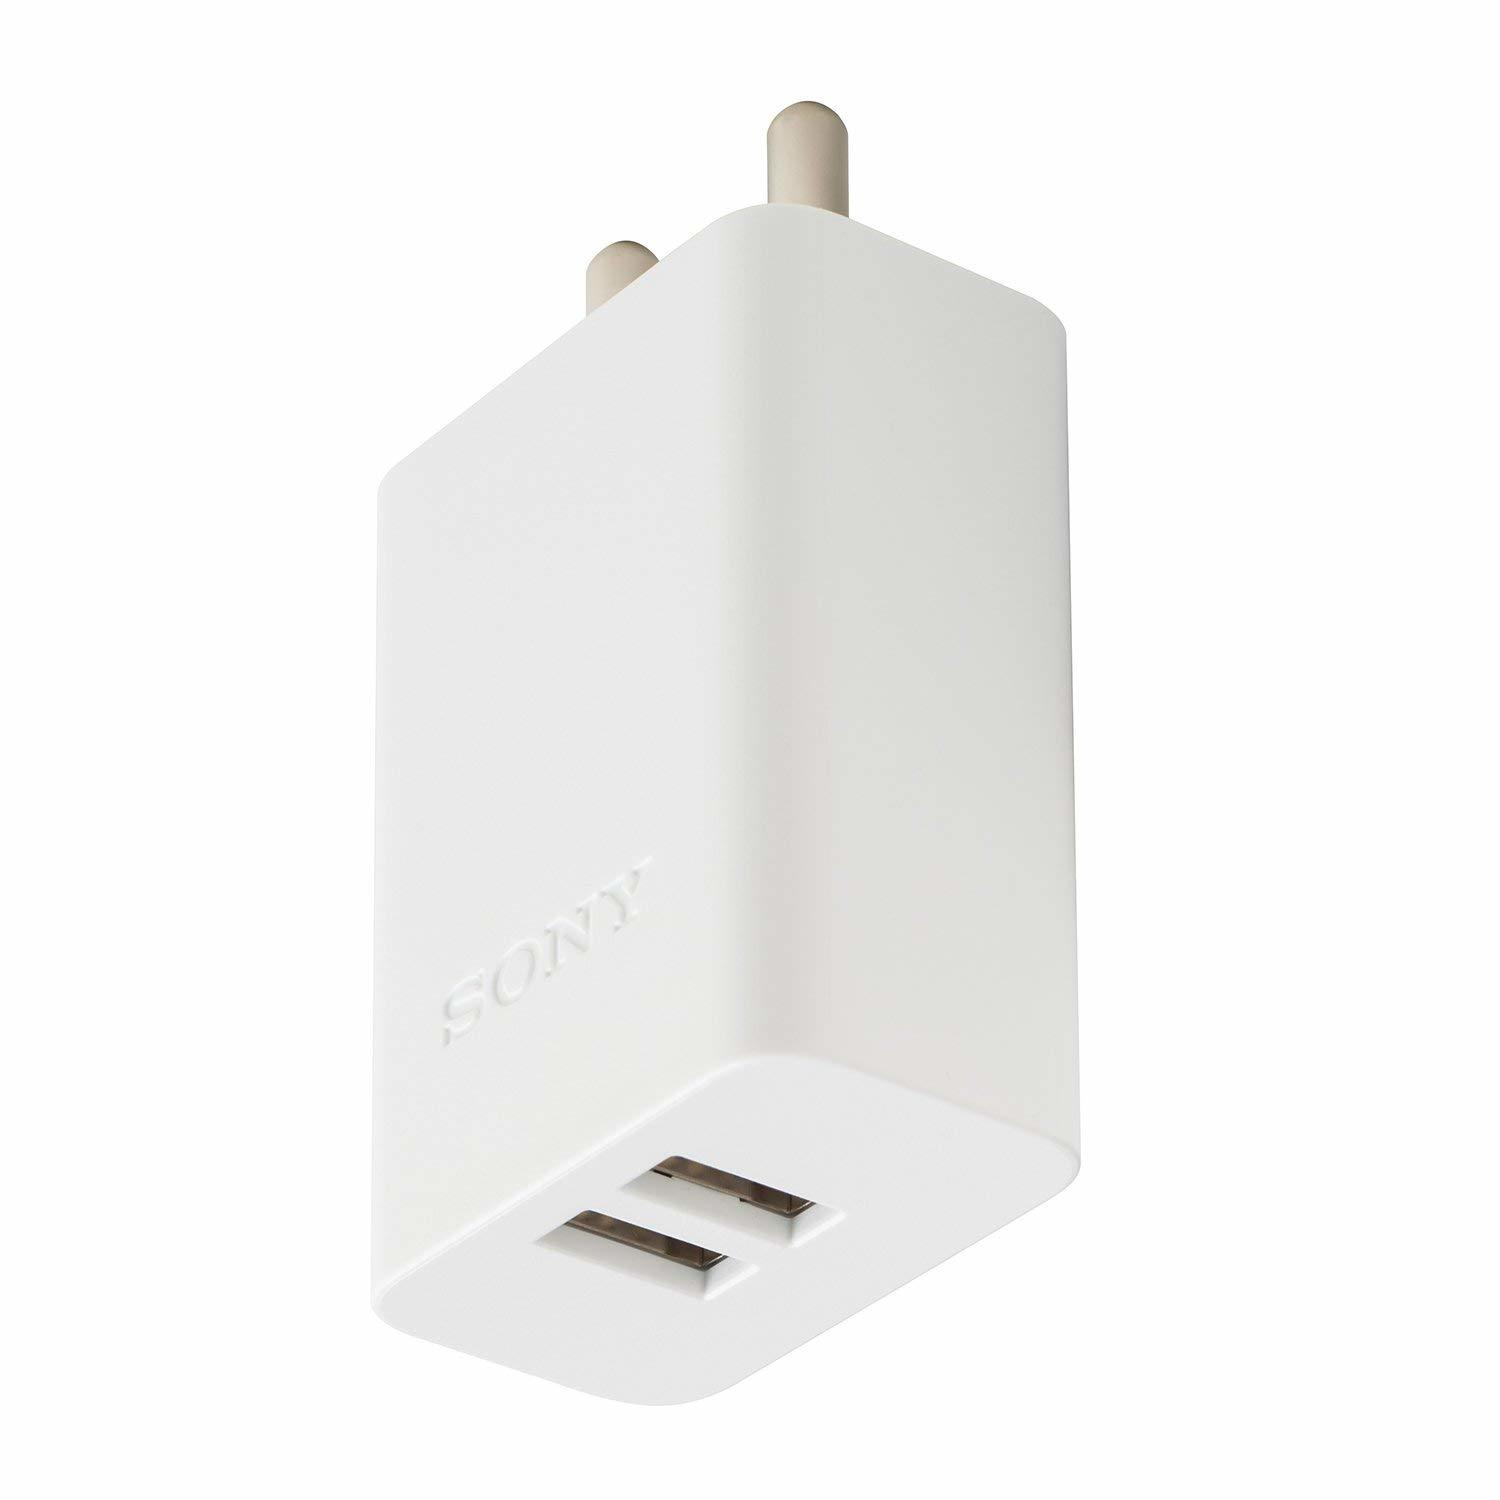 Sony Original 3.0A Fast Charging 2 Port Adapter, White